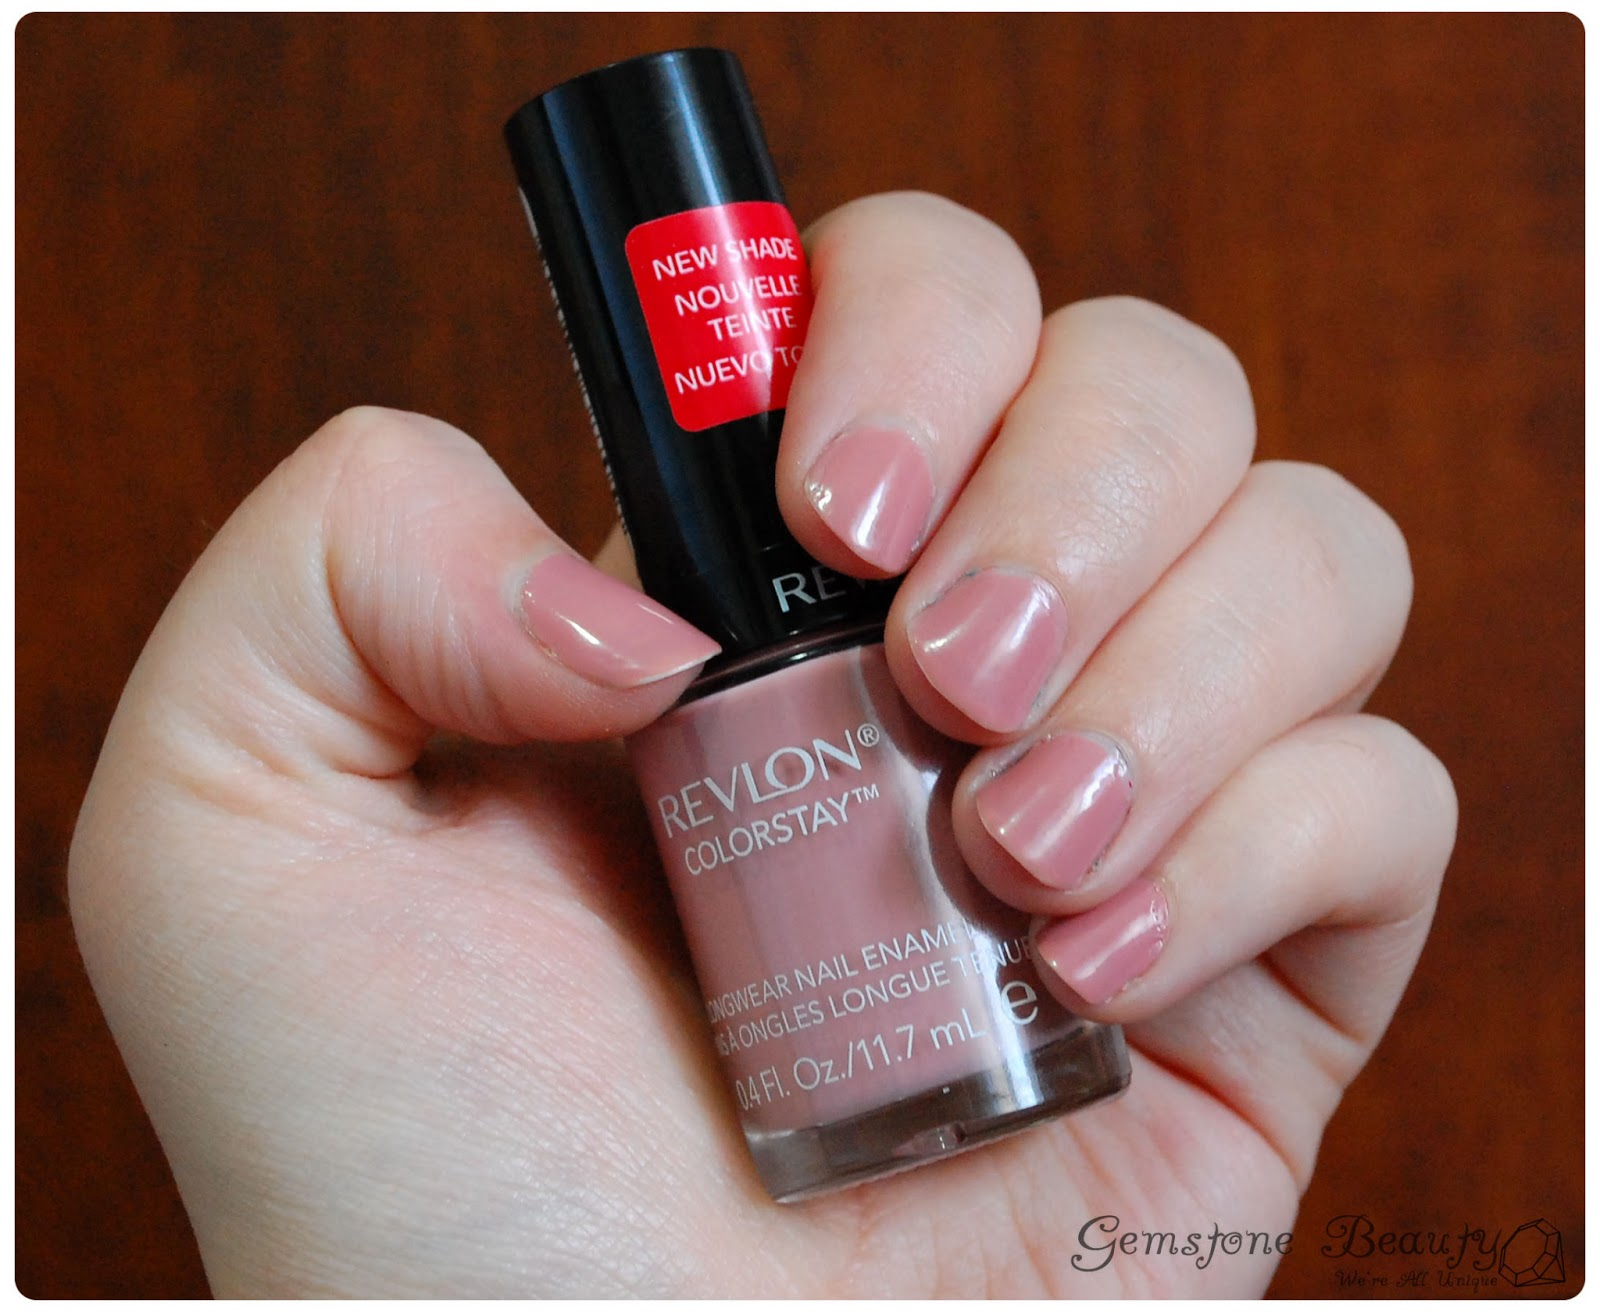 REvlonColorstaynails - Beautifull nail colours :)